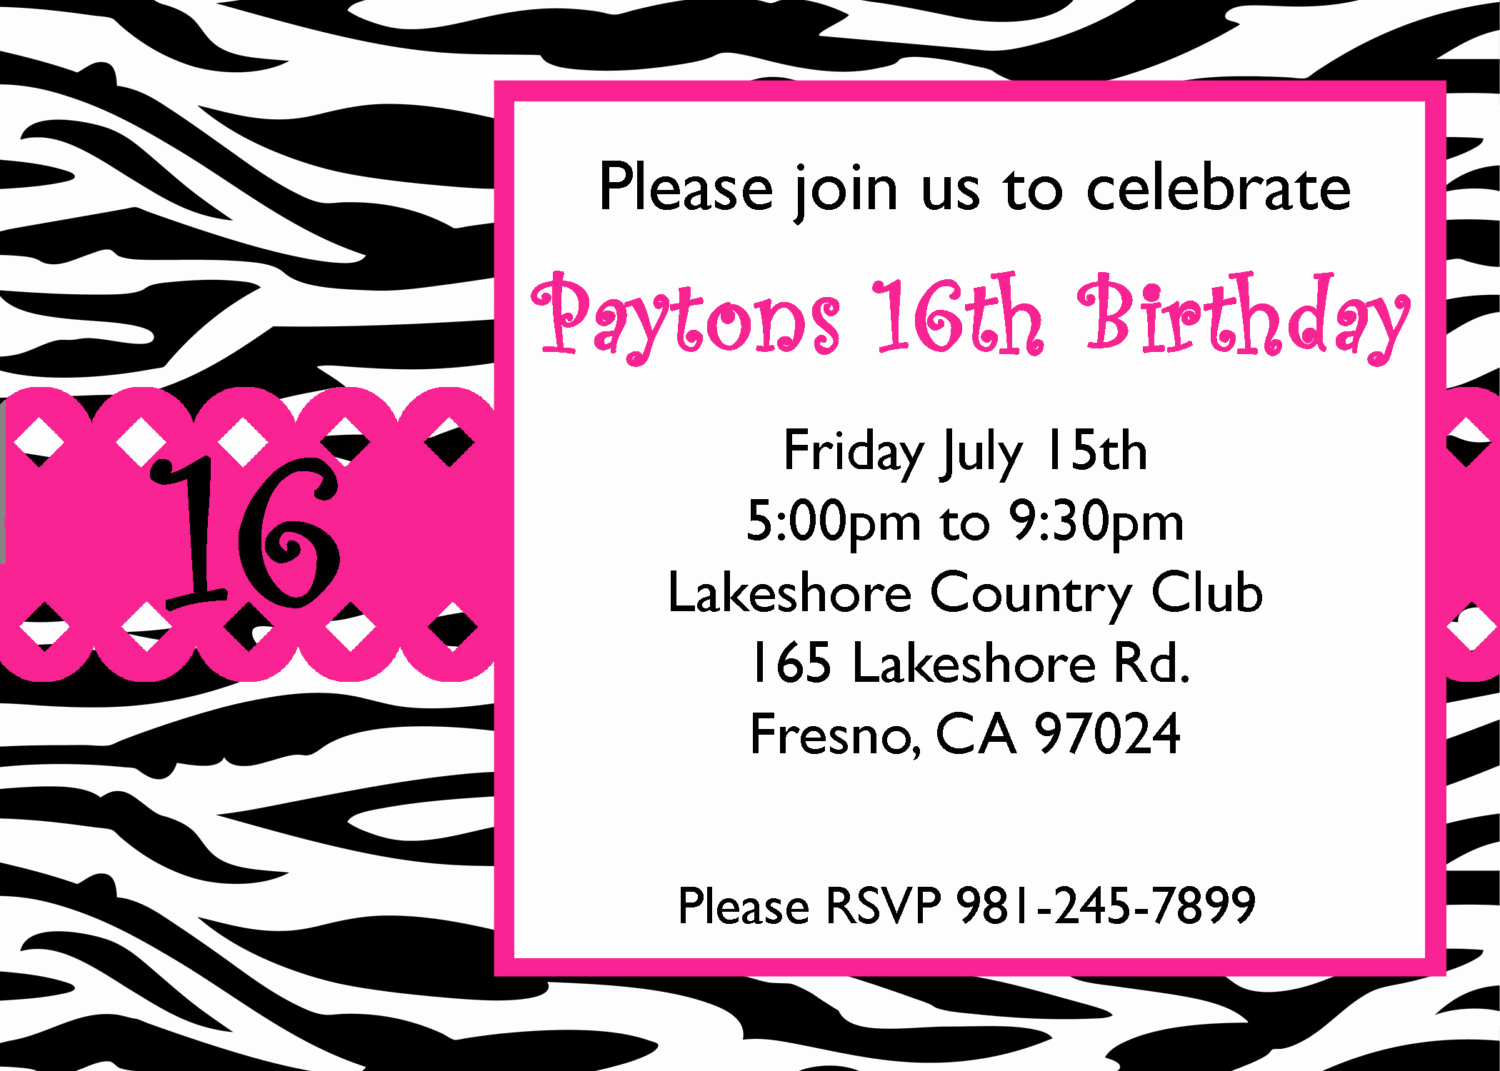 Sweet Sixteen Invitation Template Elegant Free Sweet 16 Birthday Invitations Templates